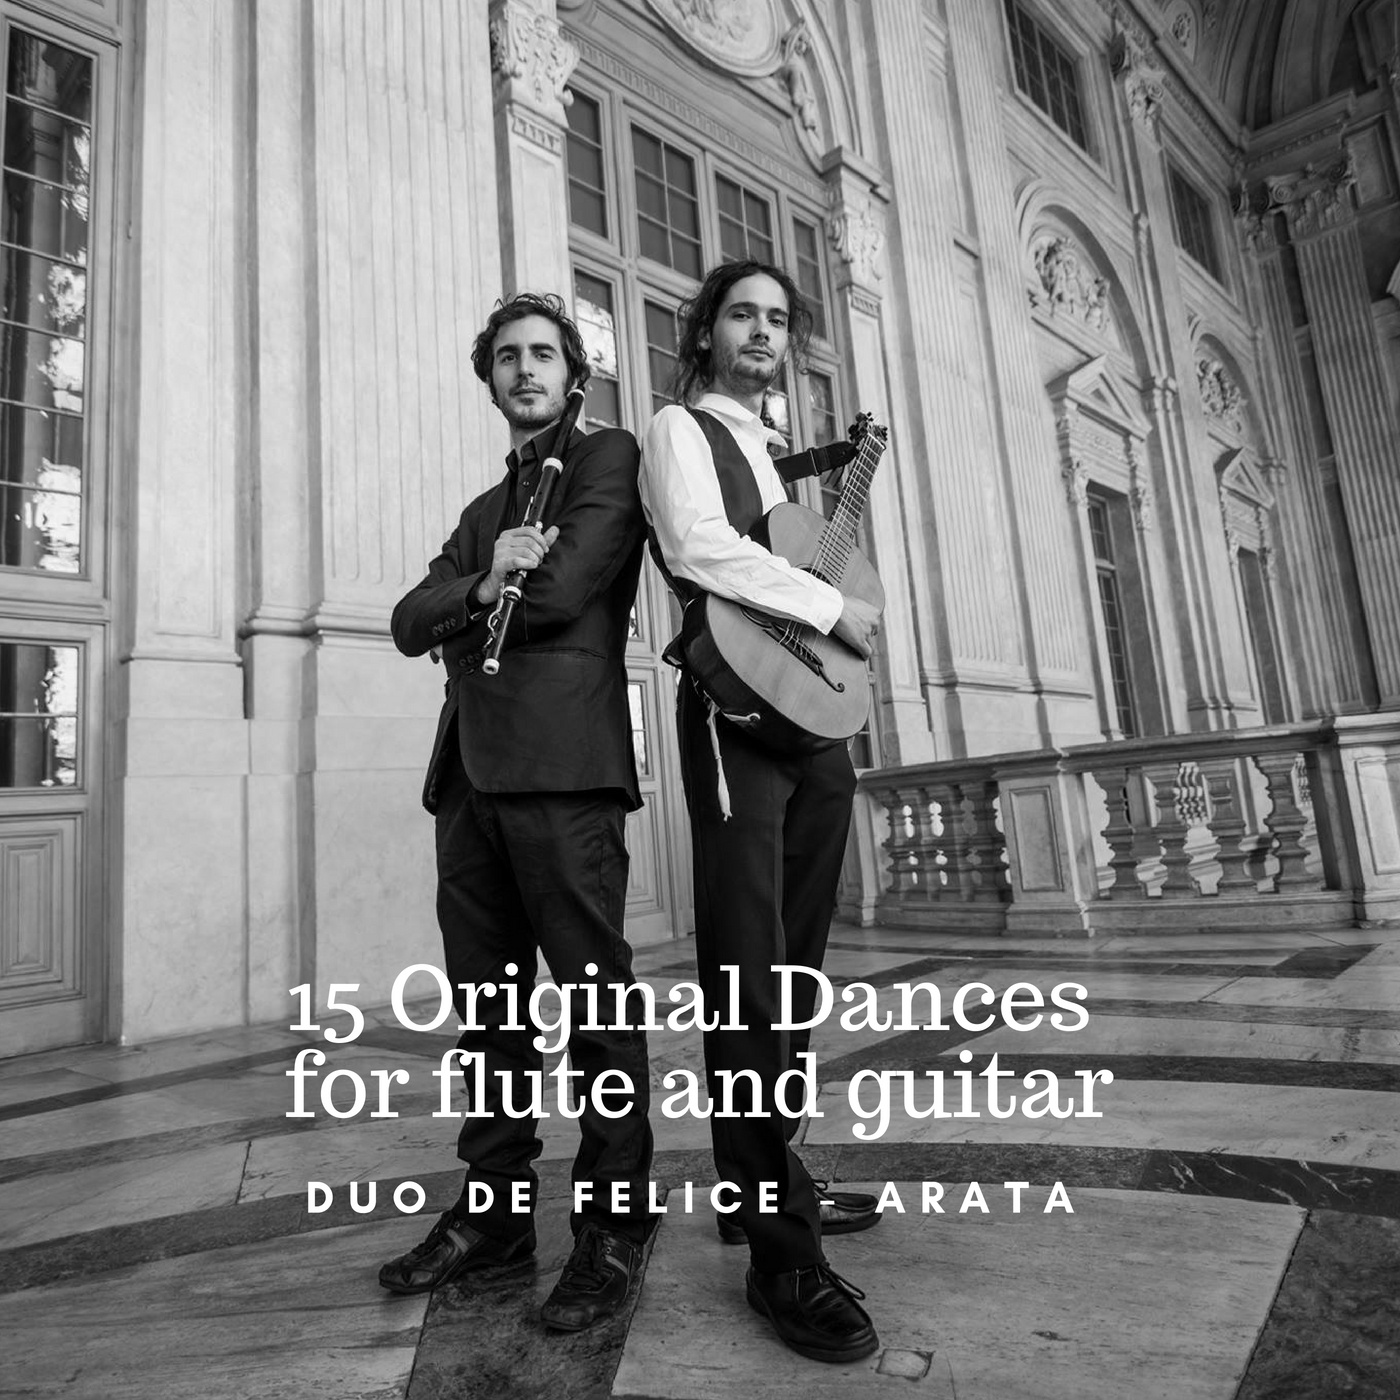 Schubert: 15 Original Dances from D. 365 for Flute and Guitar